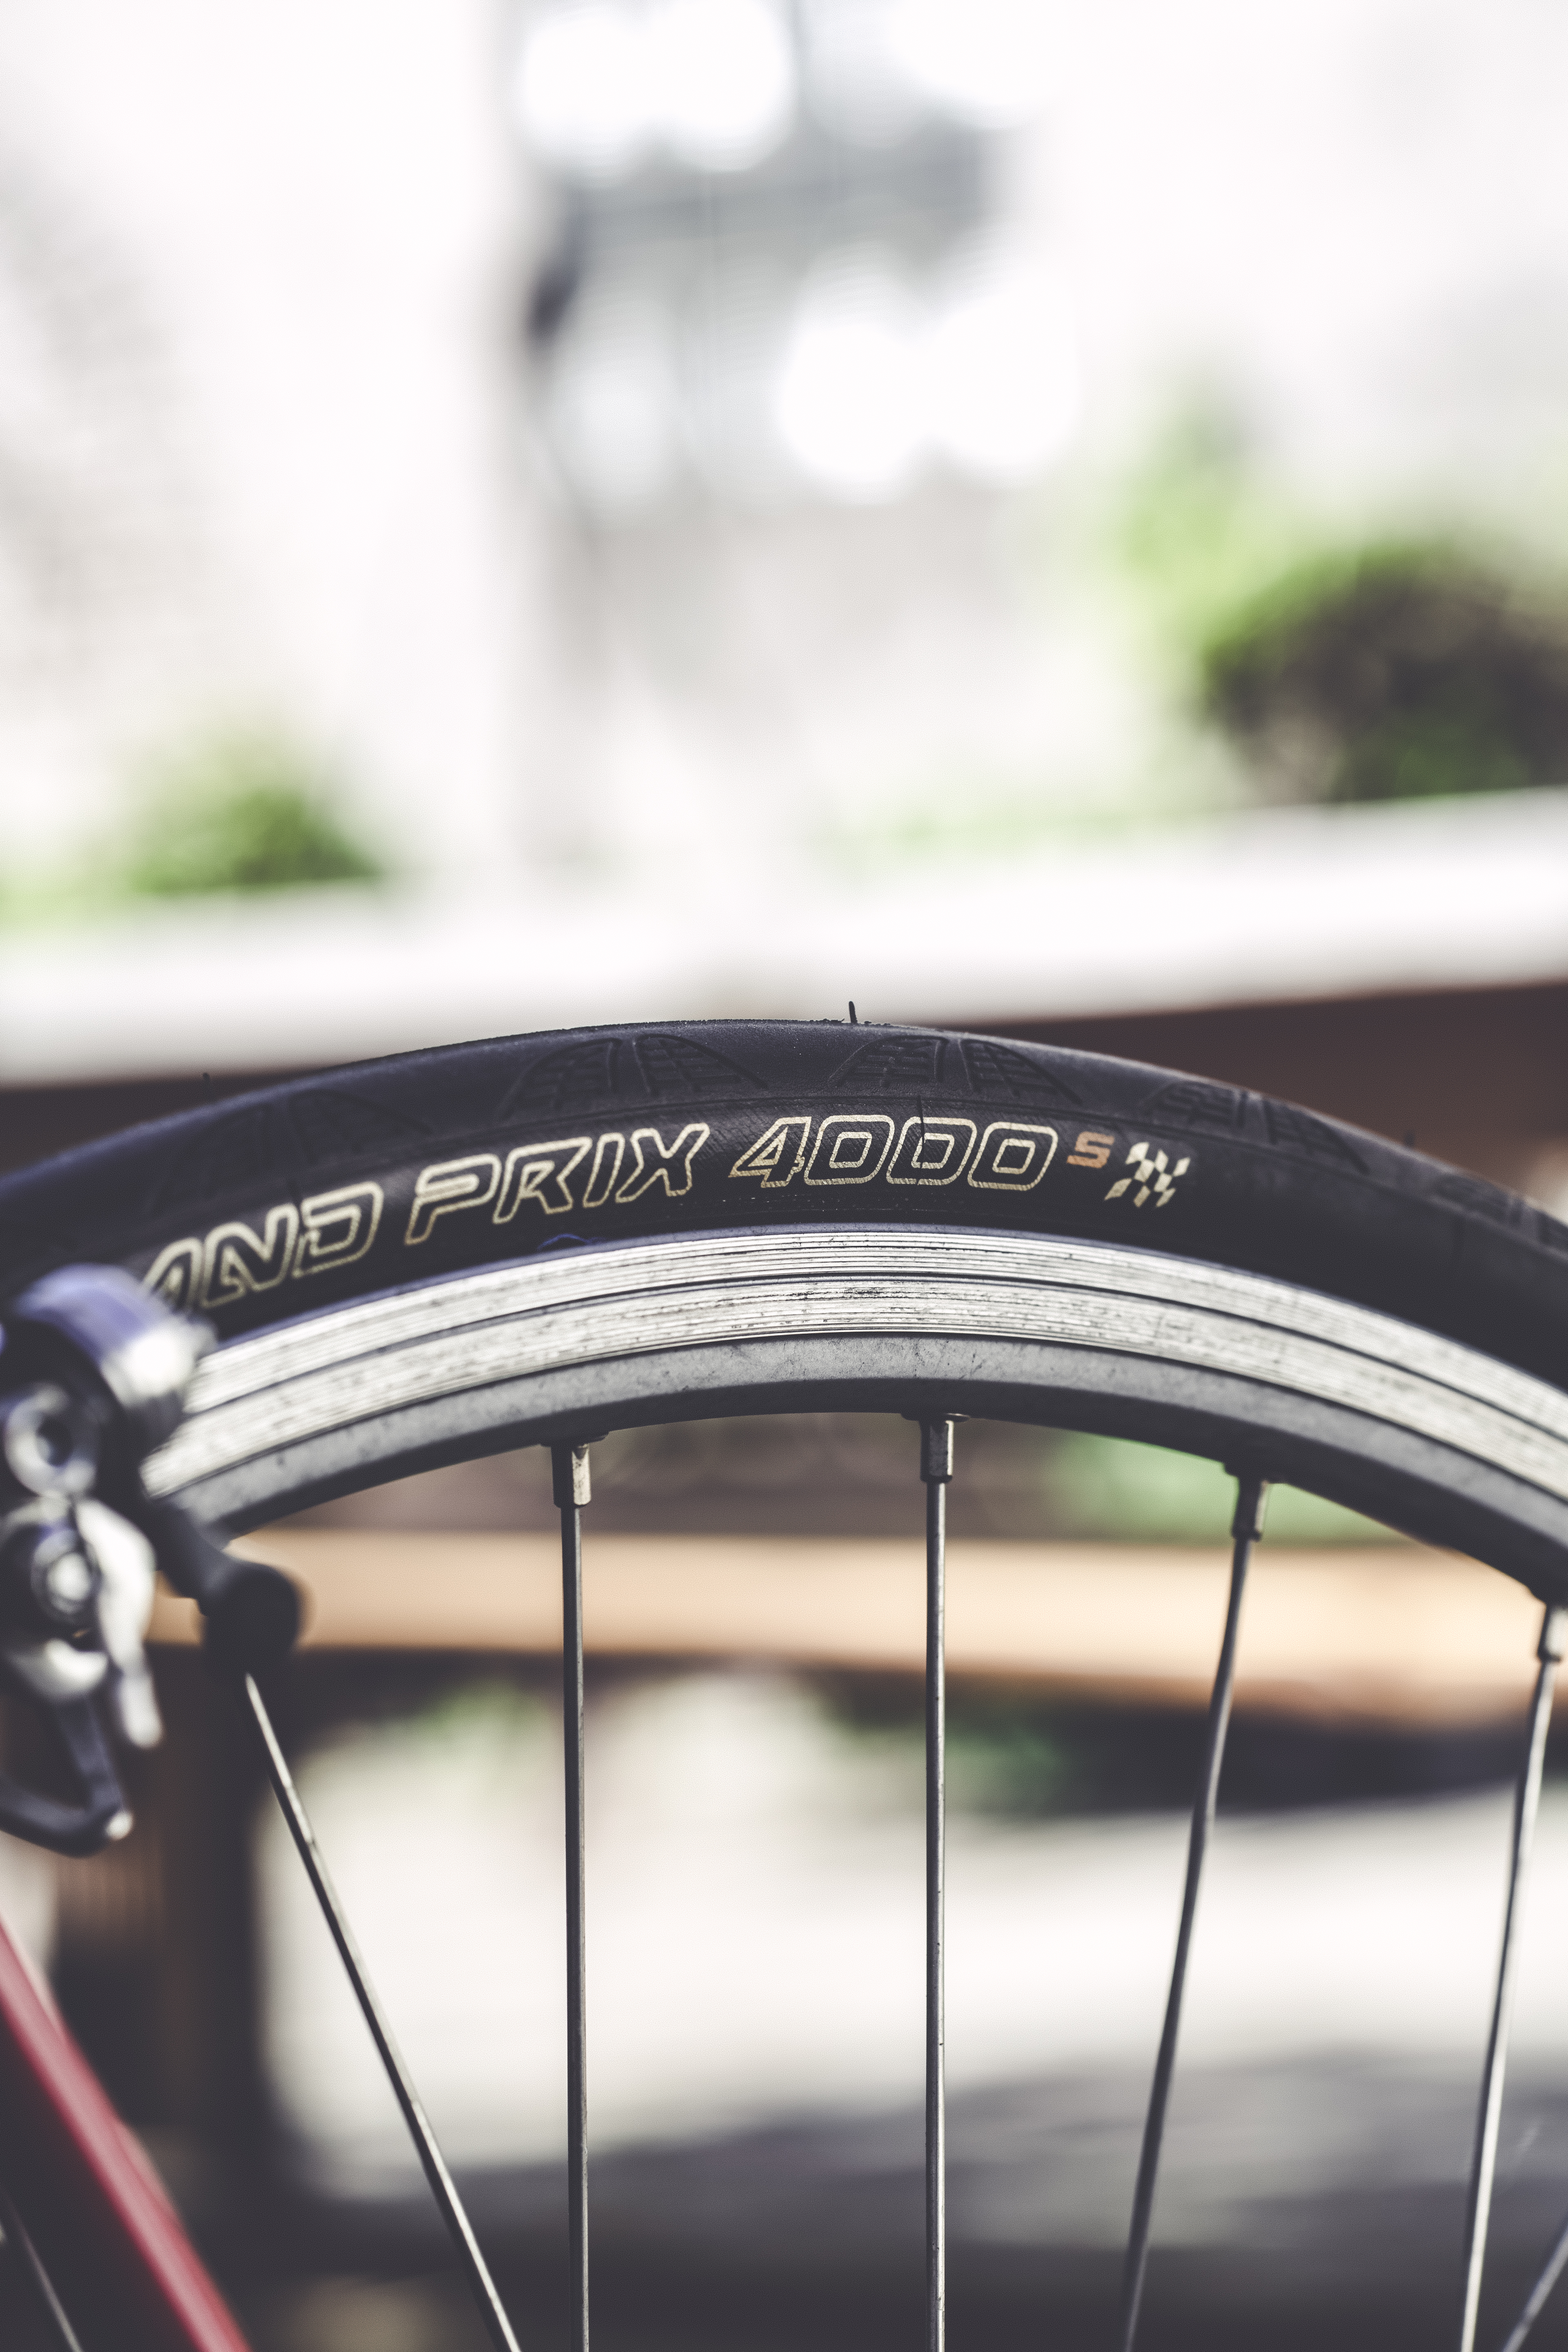 Close-up Photo of Black Bike Wheel